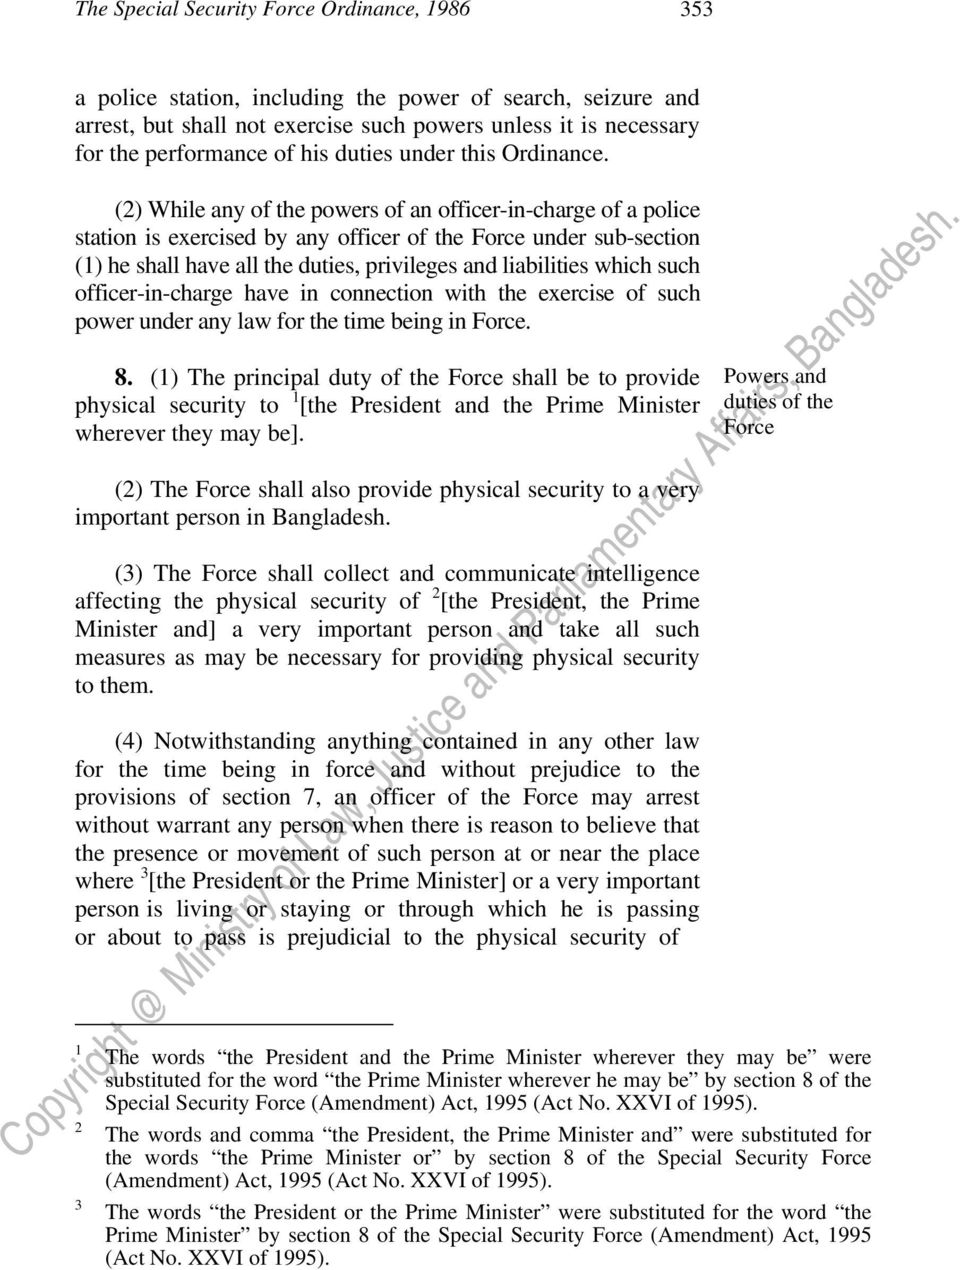 () While any of the powers of an officer-in-charge of a police station is exercised by any officer of the Force under sub-section () he shall have all the duties, privileges and liabilities which